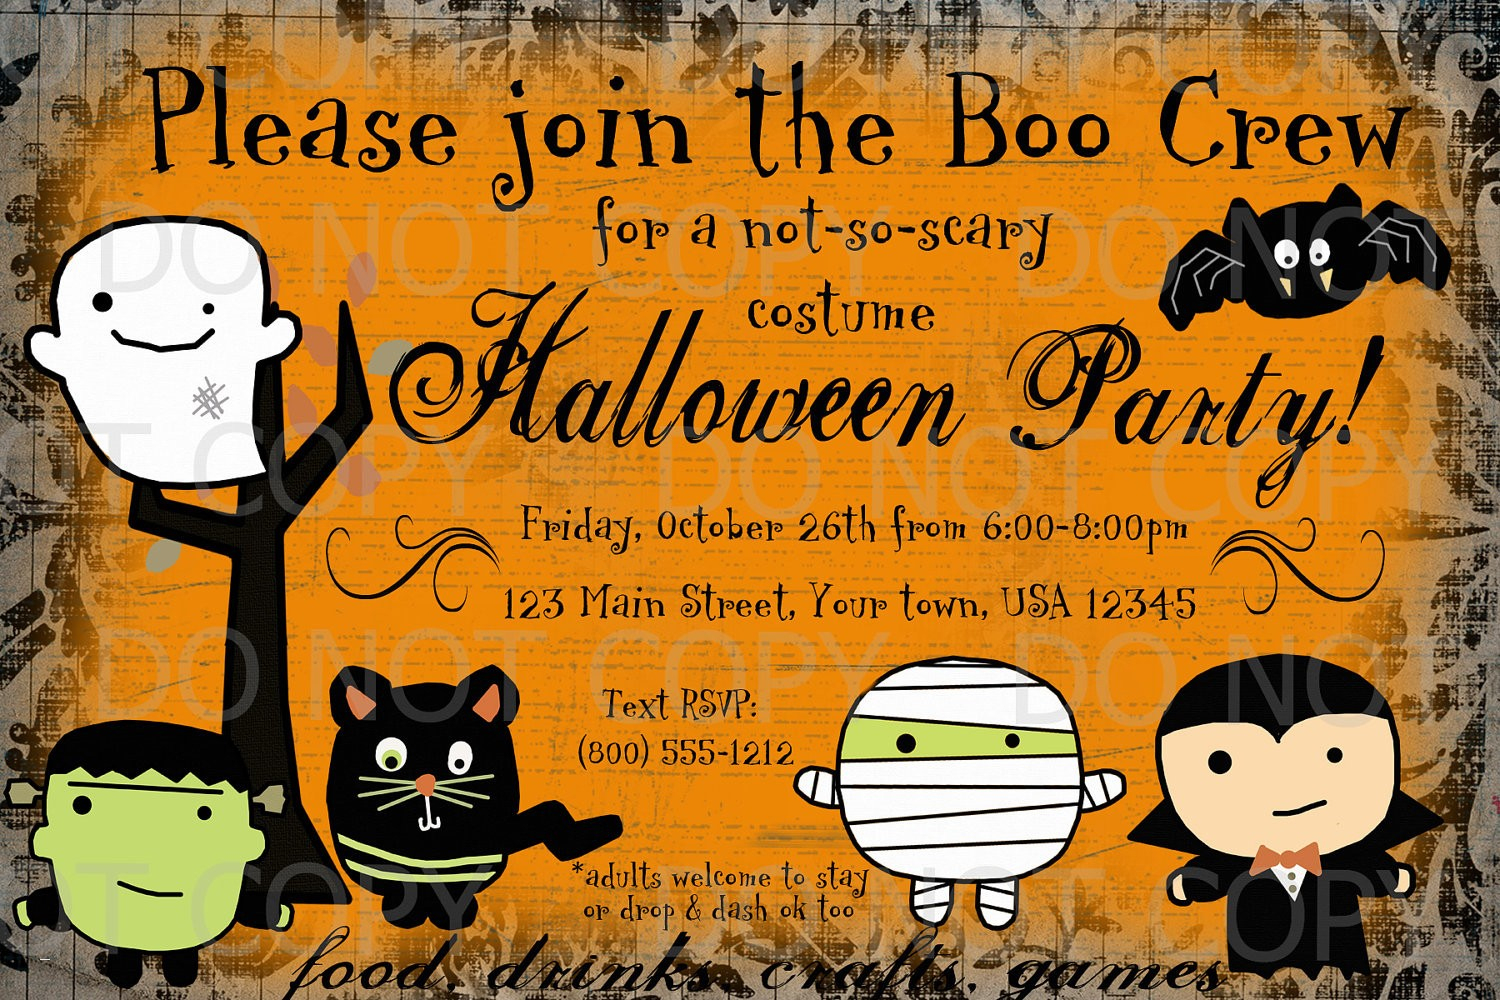 011 Halloween Party Invites Templates Template Ideas Free Printable - Halloween Party Invitation Templates Free Printable